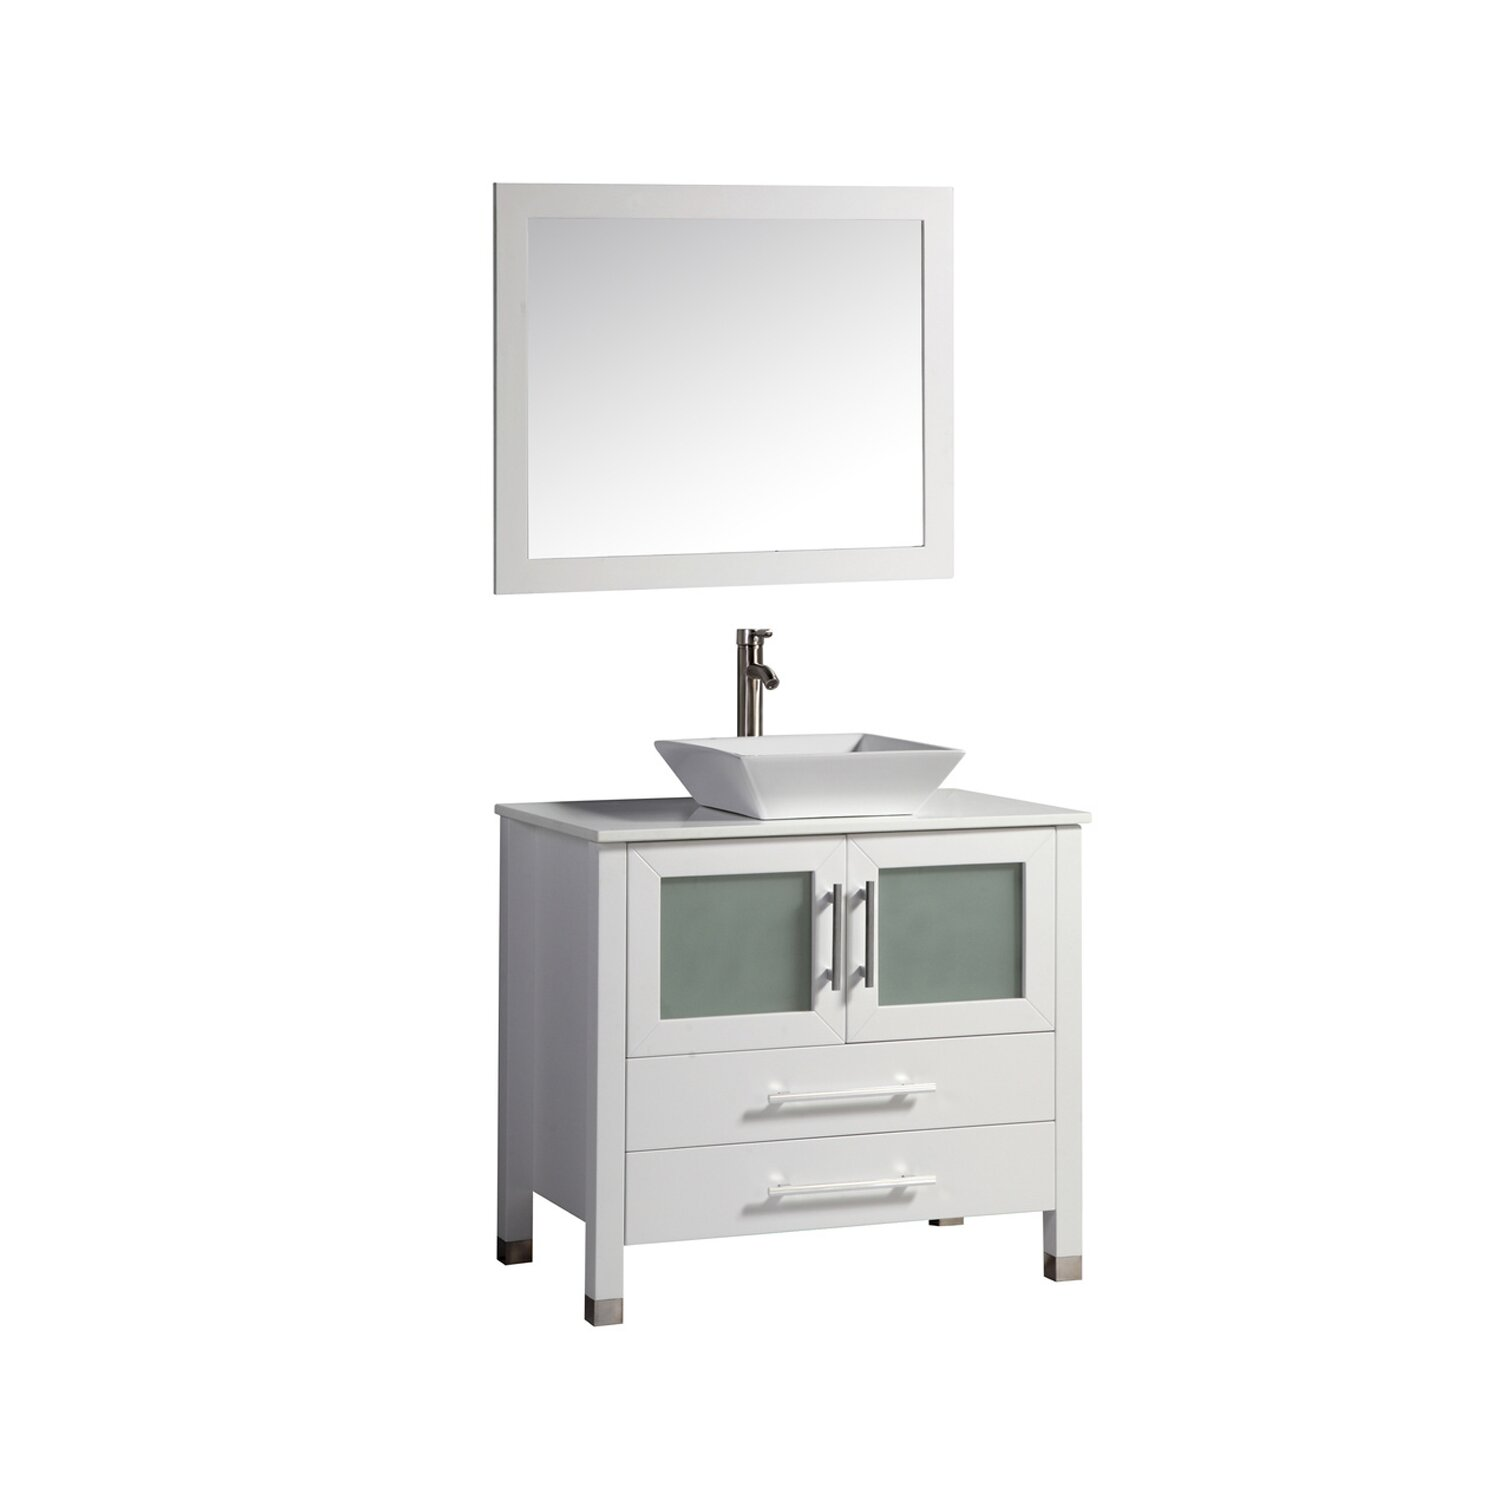 mtd vanities monaco 36 single sink bathroom vanity set with mirror